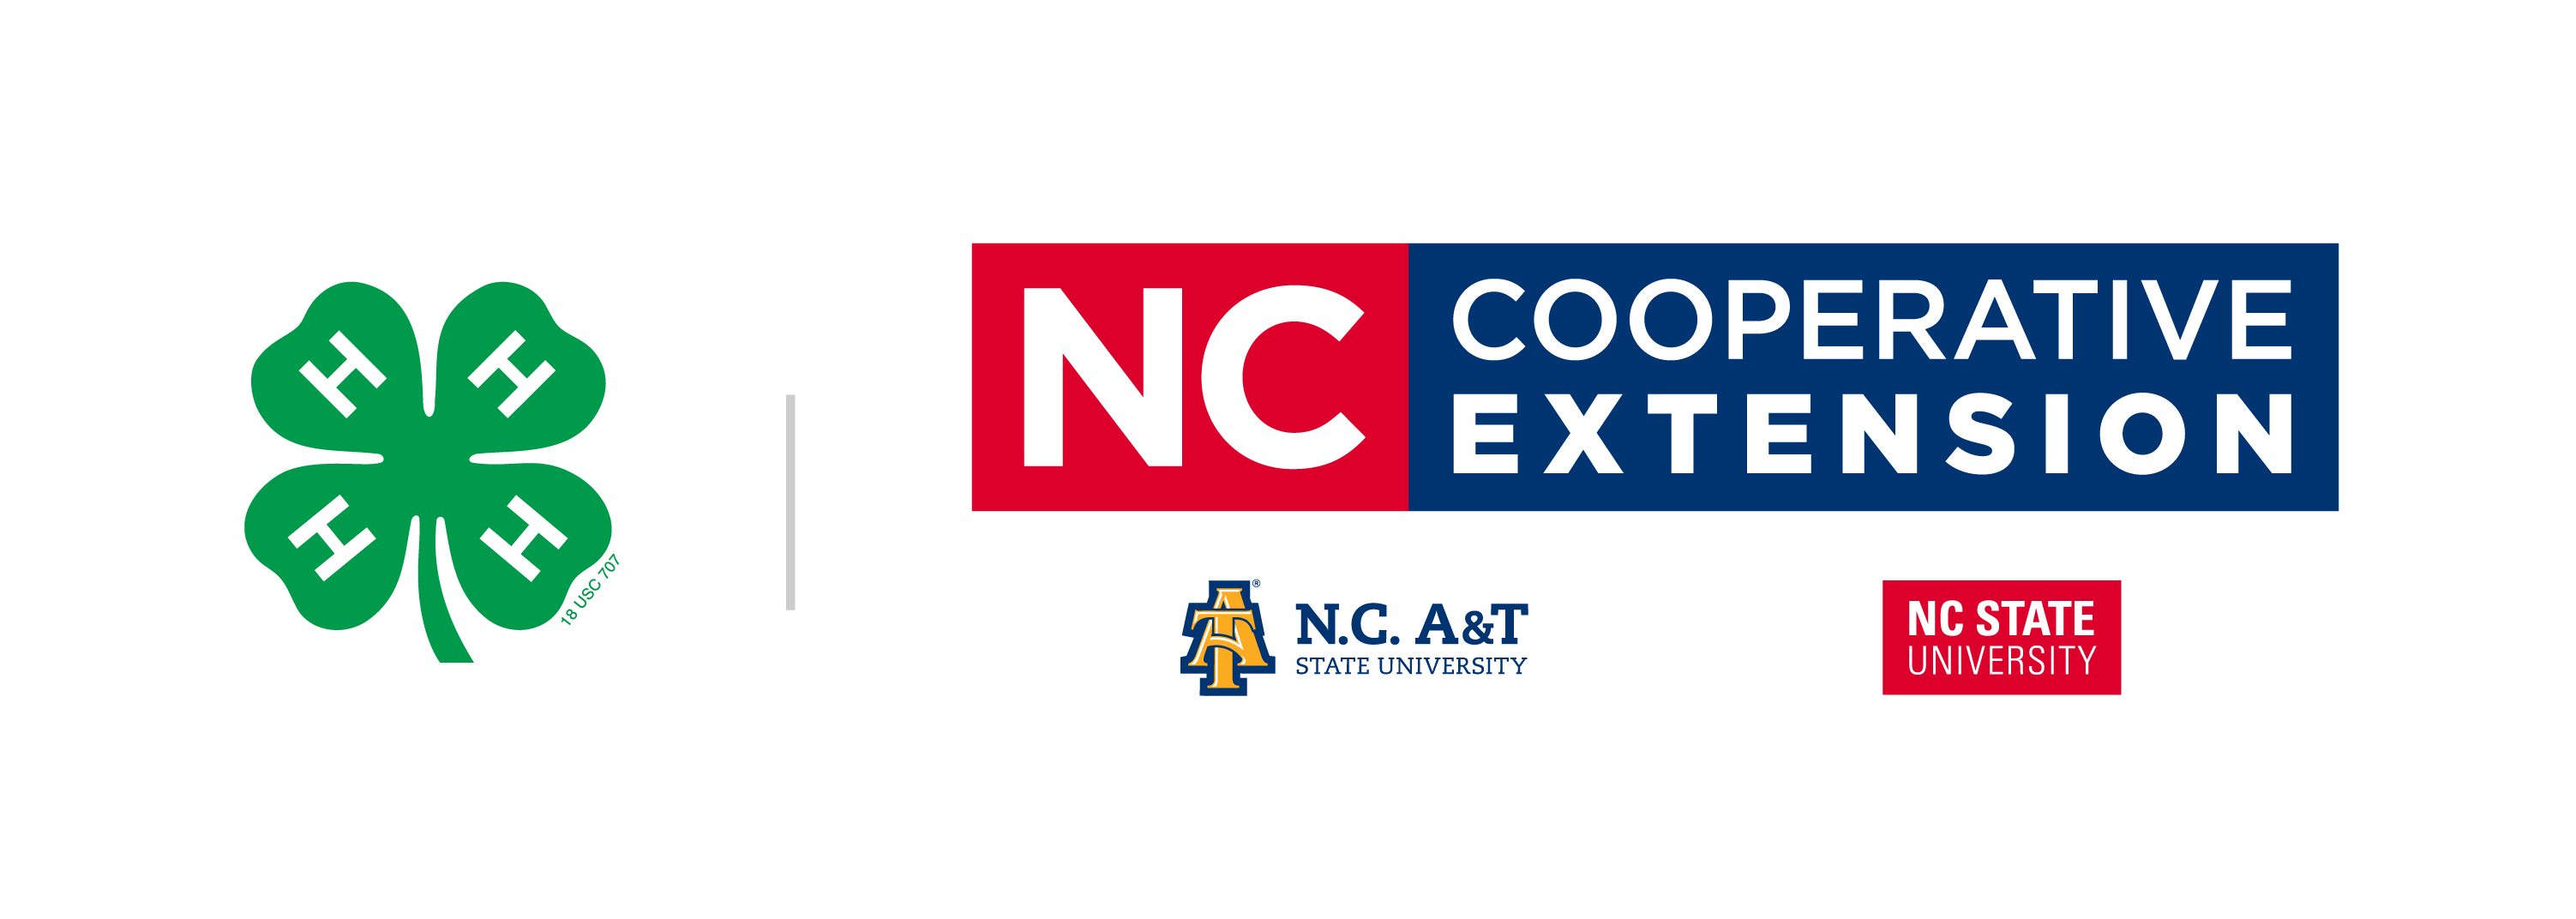 N.C. Cooperstive Extension logo image